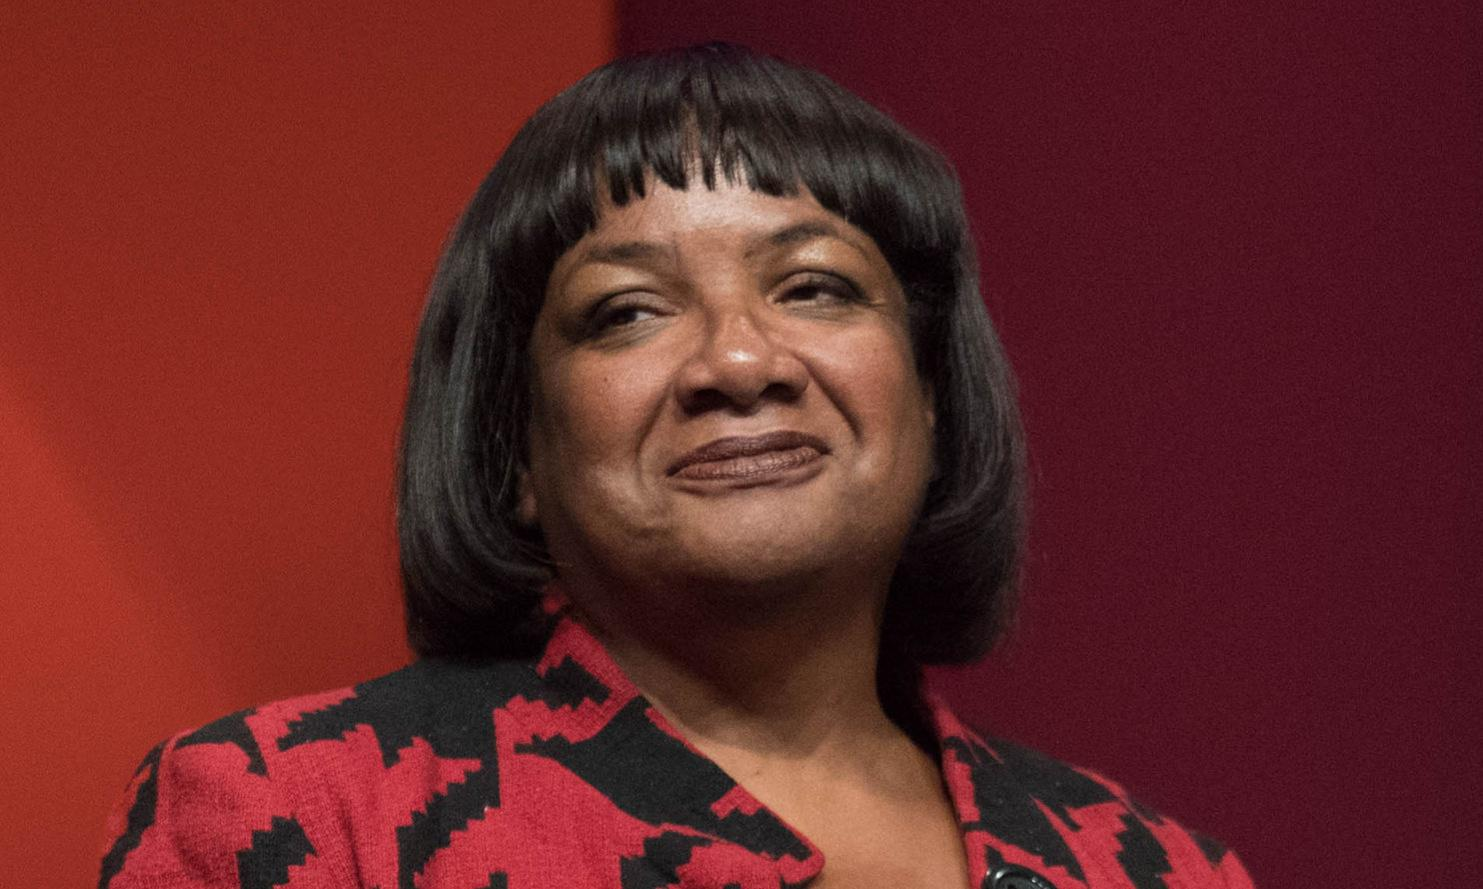 Raise a can to Diane Abbott, a politician who can mix (mojitos) with the people